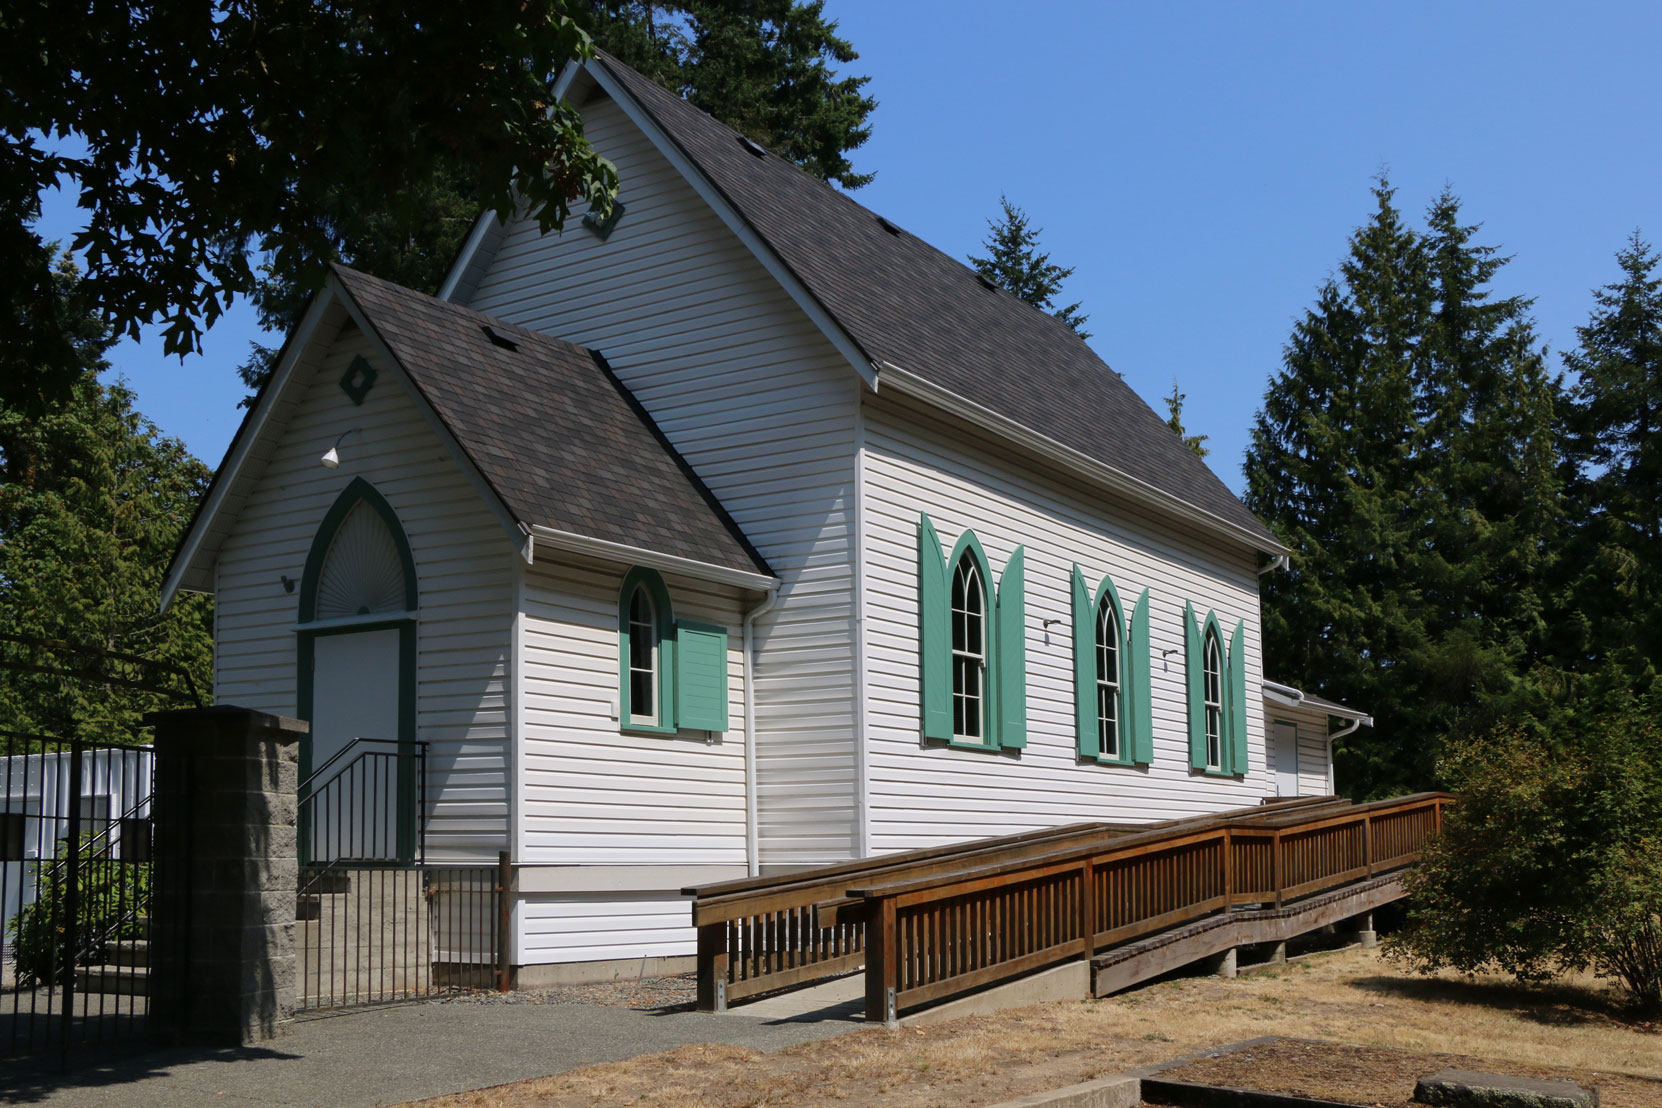 Mill Bay United Church and Cemetery, 2851 Church Way, Mill Bay, BC (photo by Temple Lodge No. 33 Historian)